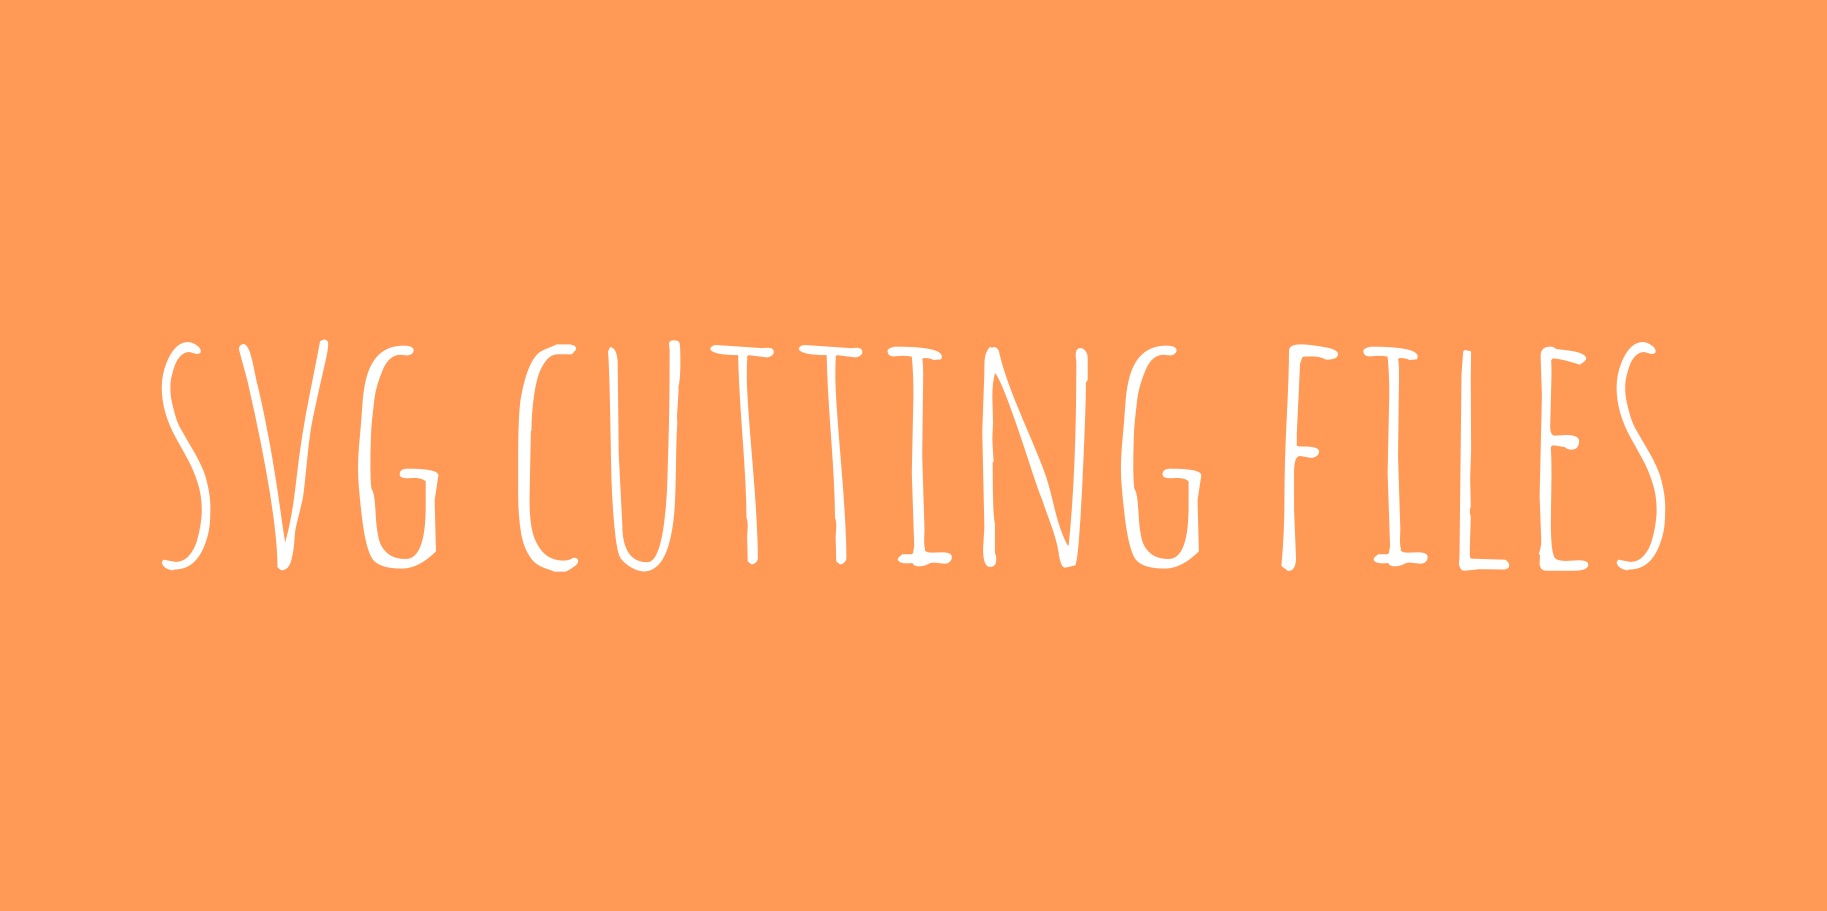 SVG cutting files for card making